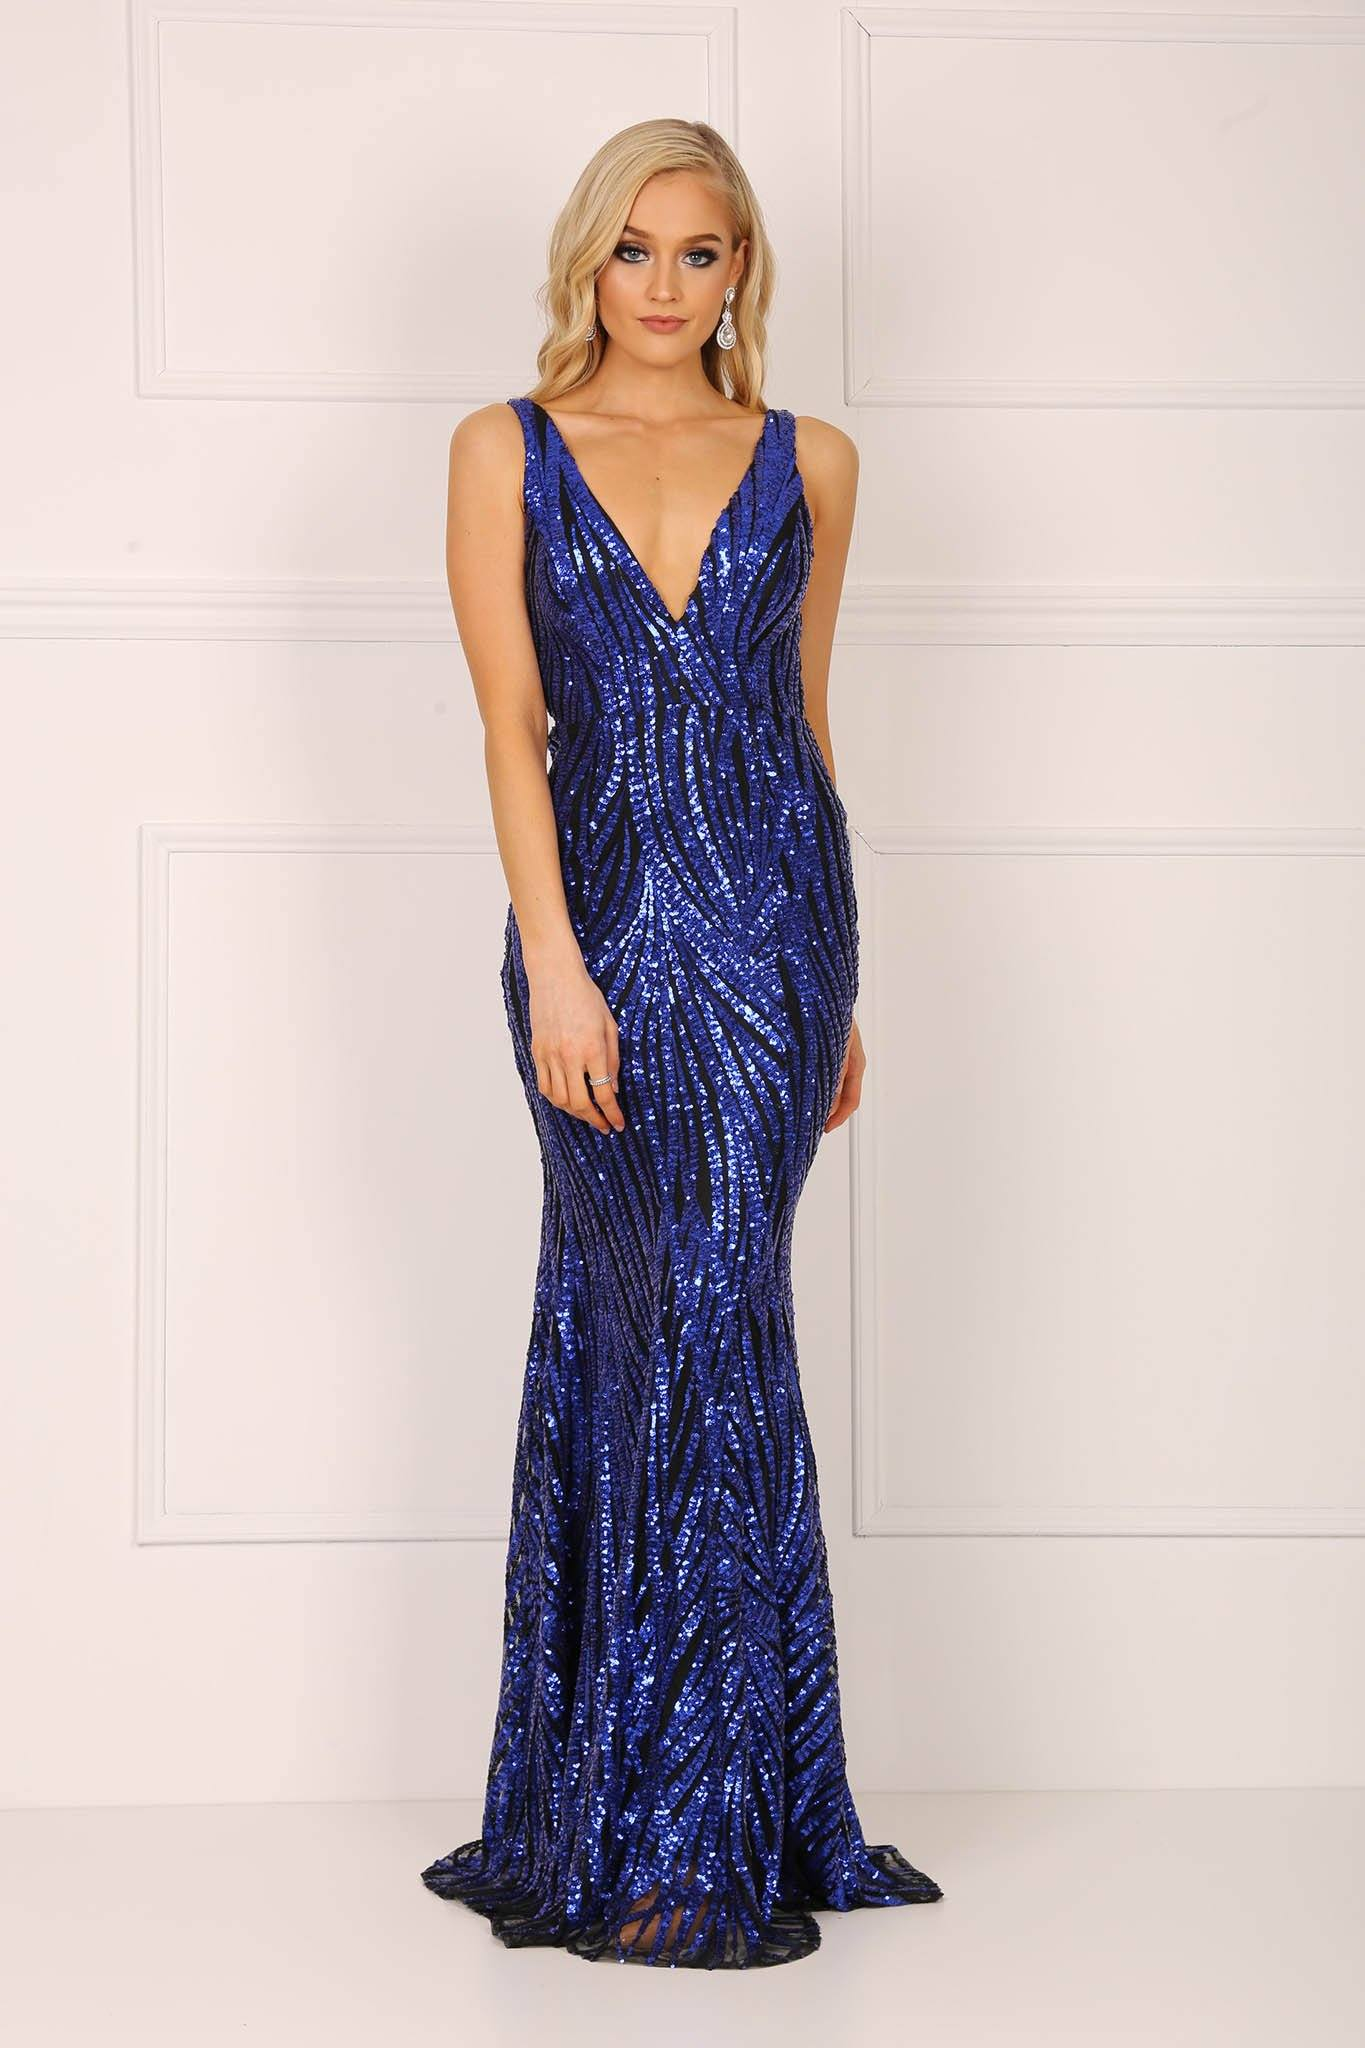 Navy embroidered sequin formal sleeveless gown with v plunge neckline and open back design